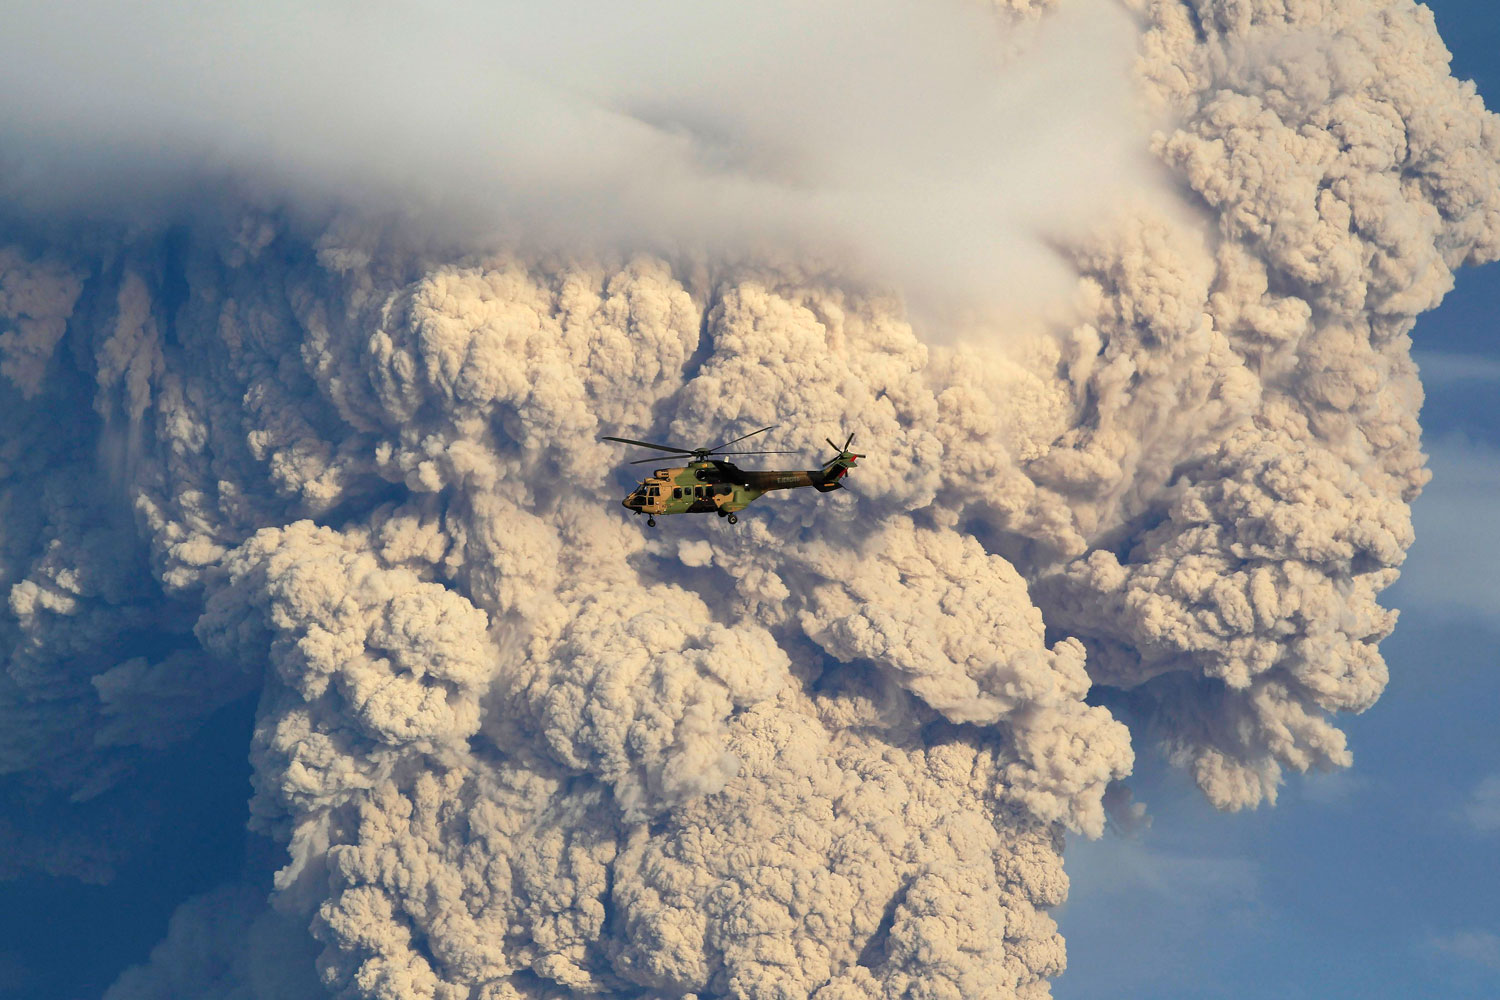 A helicopter flies over smoke and ash rising from the Puyehue-Cordon Caulle volcanic chain near Osorno city in south-central Chile June 5, 2011.